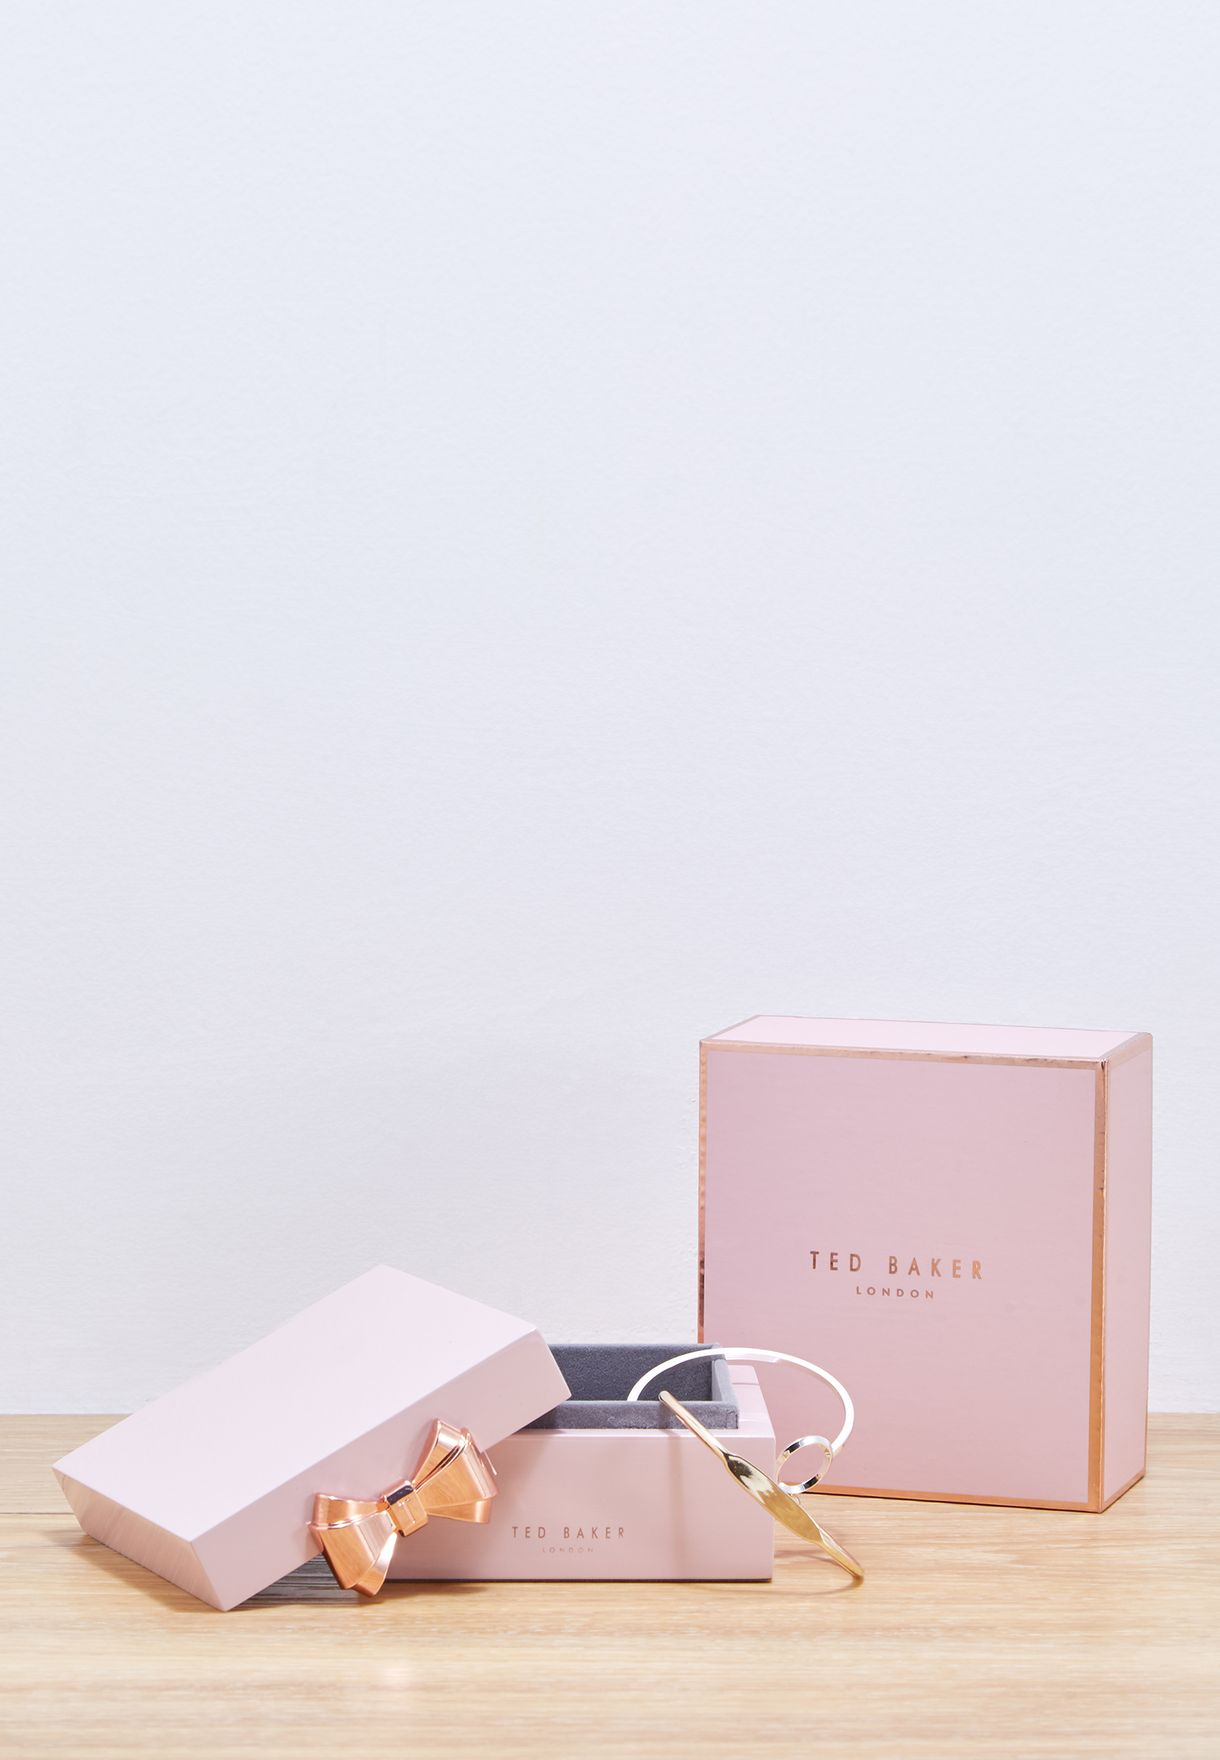 683a474e1 Shop Ted baker pink Small Lacquer Jewellery Box TED364 for Women in ...